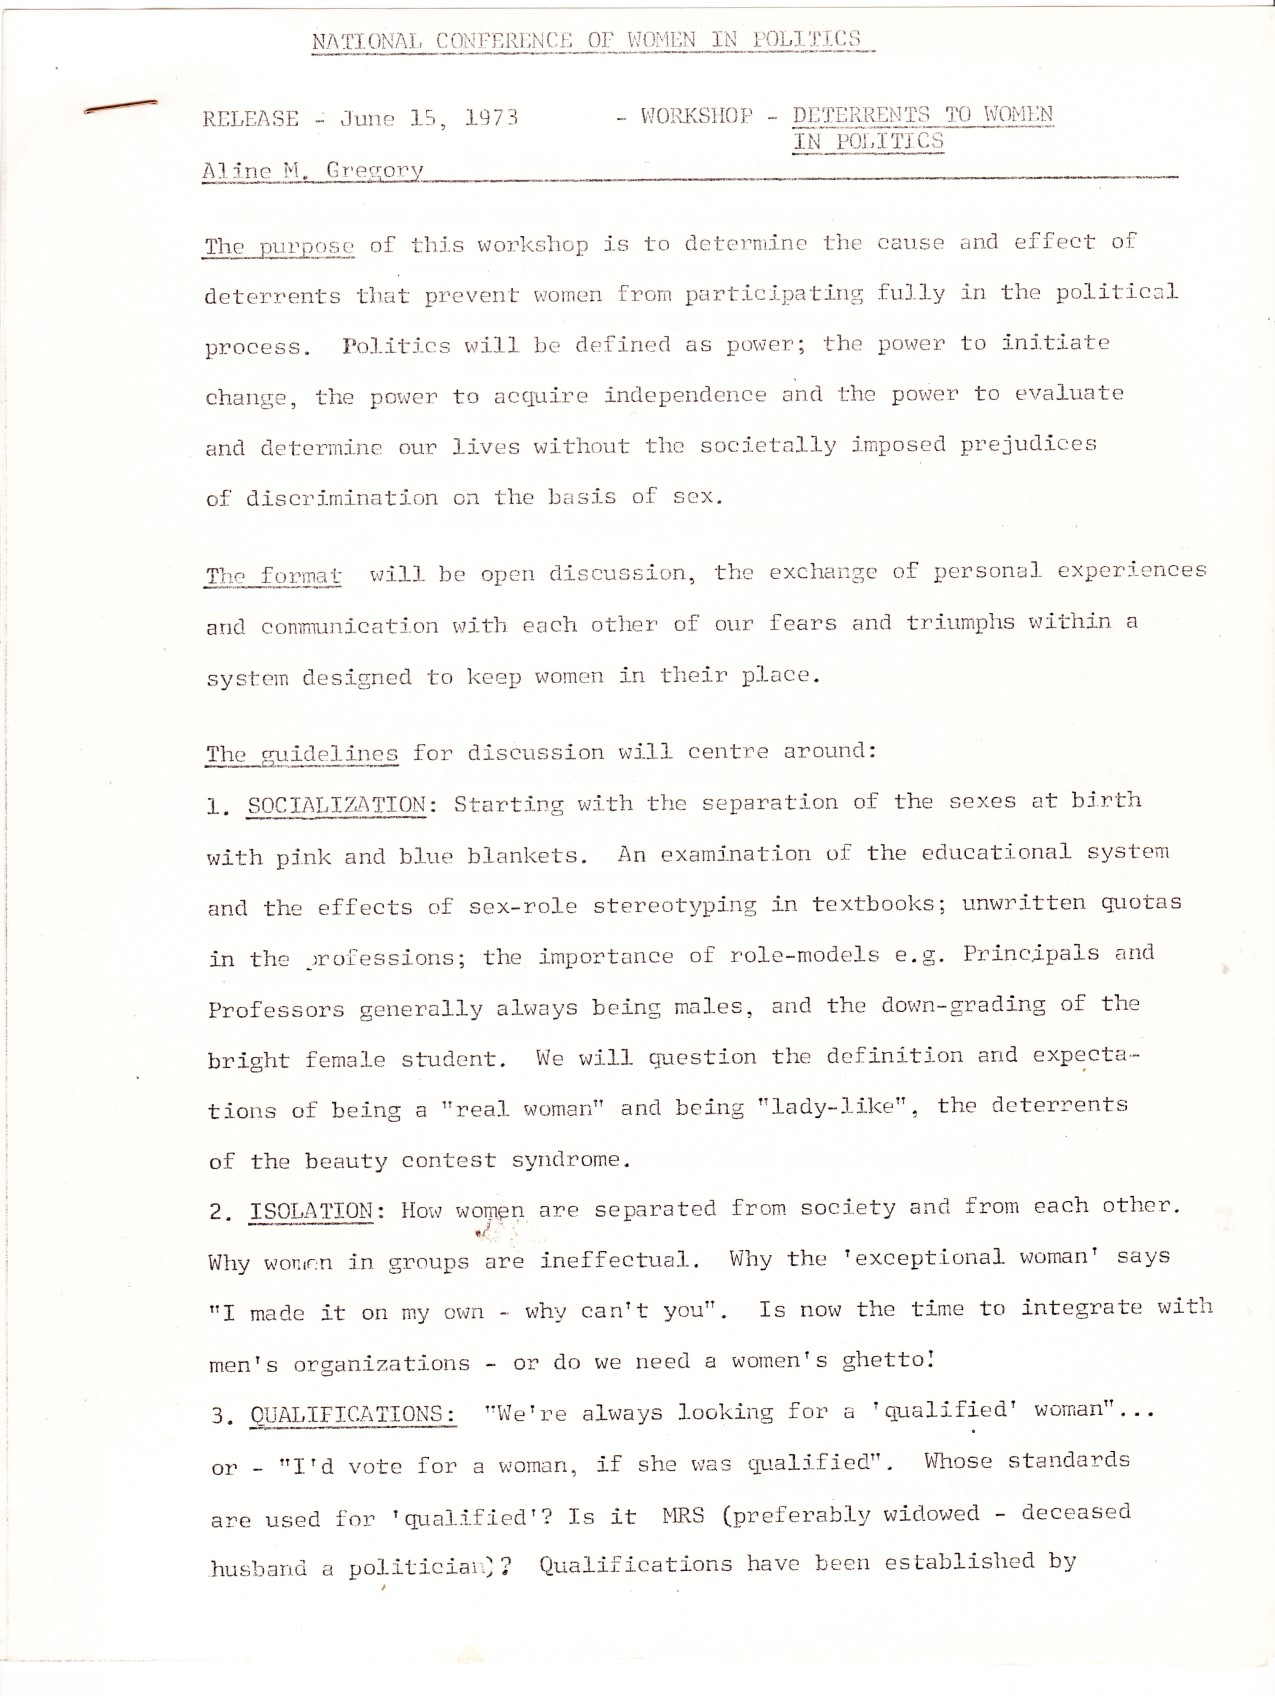 1973 Women In Politics Conference - Workshop Notes: Deterrents to Women in Politics page 1